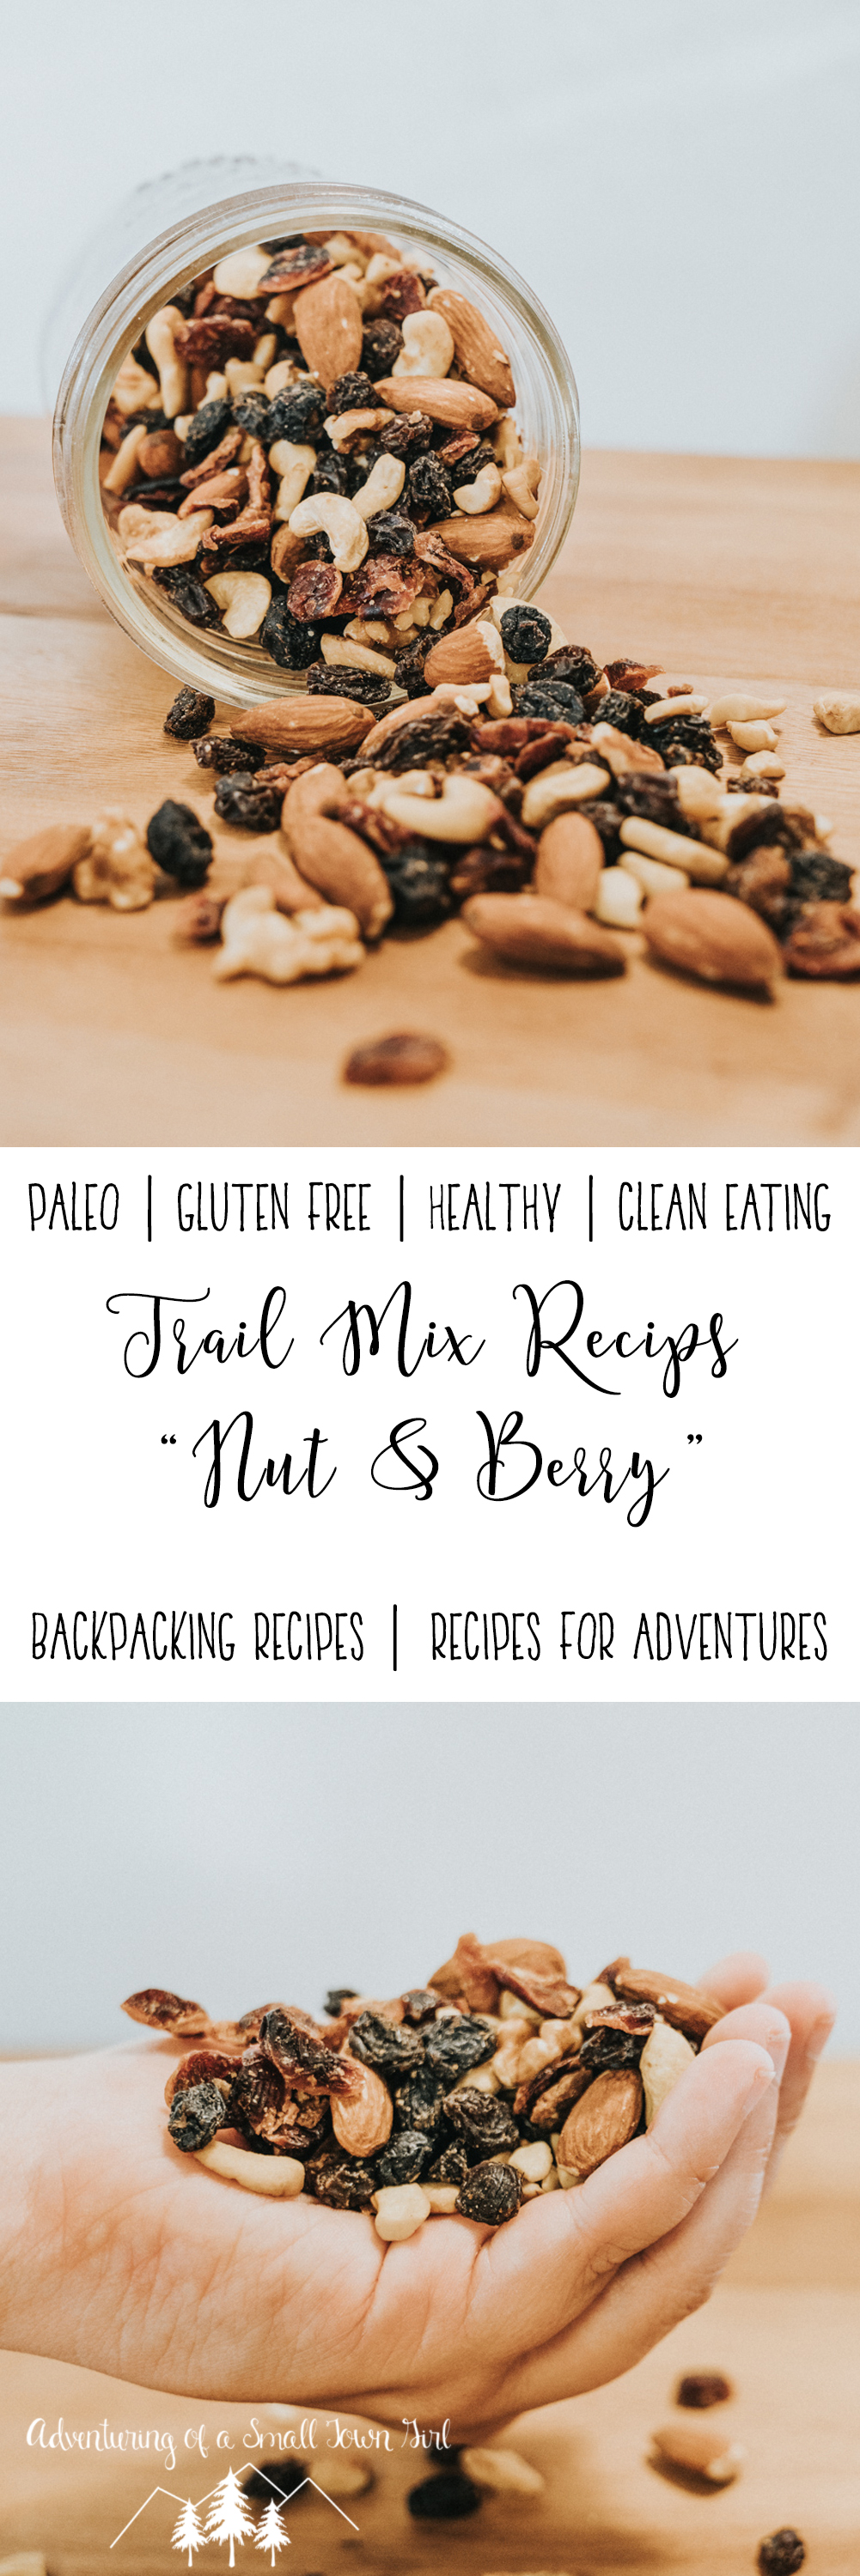 Homemade Trail Mix Recipe Nut and Berry Trail Mix by Adventuring of a Small Town Girl (ASTG) - No Bake Raw Vegan Trail Mix - Make your own trail mix.jpg